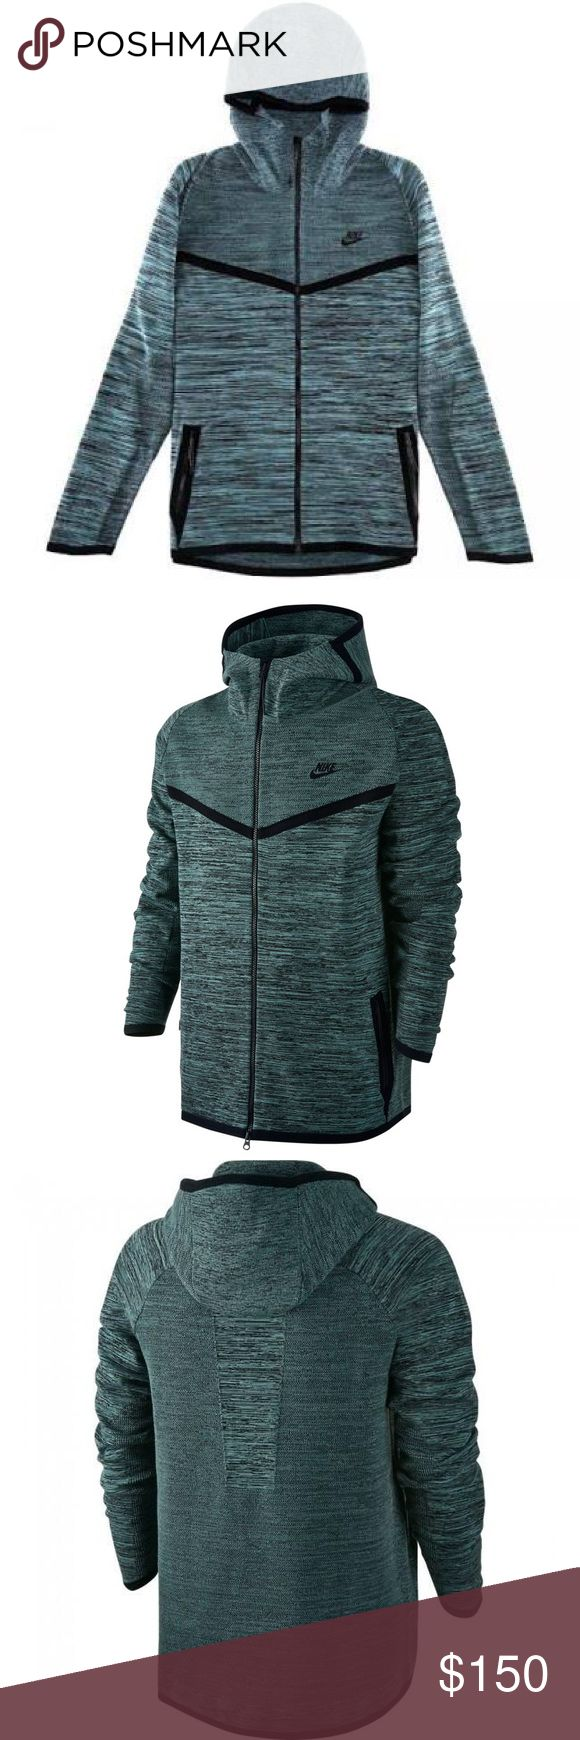 New Nike Tech Knit Windrunner Hoodie Jacket Hasta New Men's Nike Tech Knit Windrunner Hoodie Jacket Hasta Black Cannon  Big and tall Size 3XL.  delivers superior fit ,warmth,ventilation,all-day comfort.Nike Tech Knit,blend of nylon and cotton warm, sweater soft, luxurious feel.  Double-knit construction,micro-mesh panels under the arms,along the center-back keep you cool,Hood integrated back bungee cord personalized coverage,Side zip pockets-woven pocket bags,Full-front zip,storm flap to…